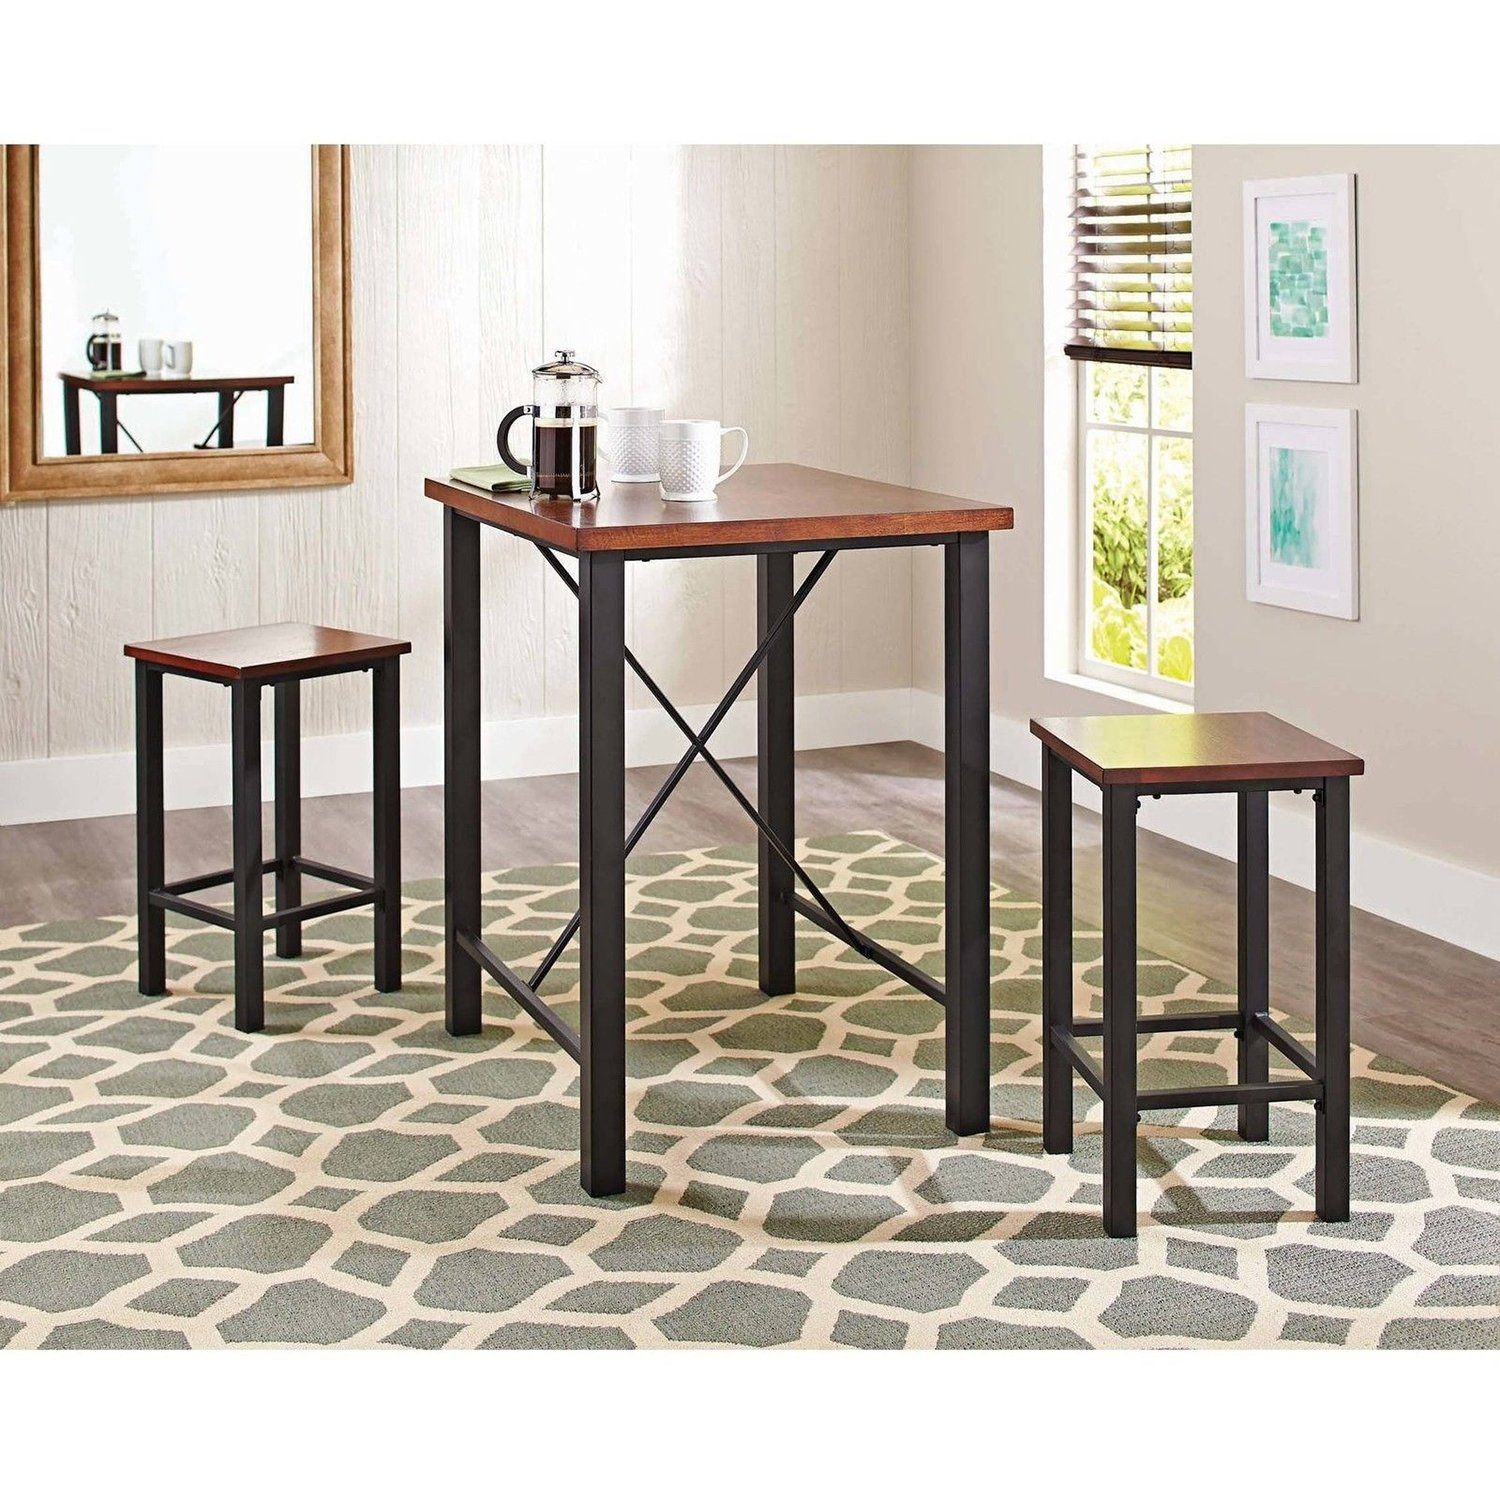 Kitchen Table And Chairs Amazon: Small Counter Height Table Sets & Dining Room Round Glass